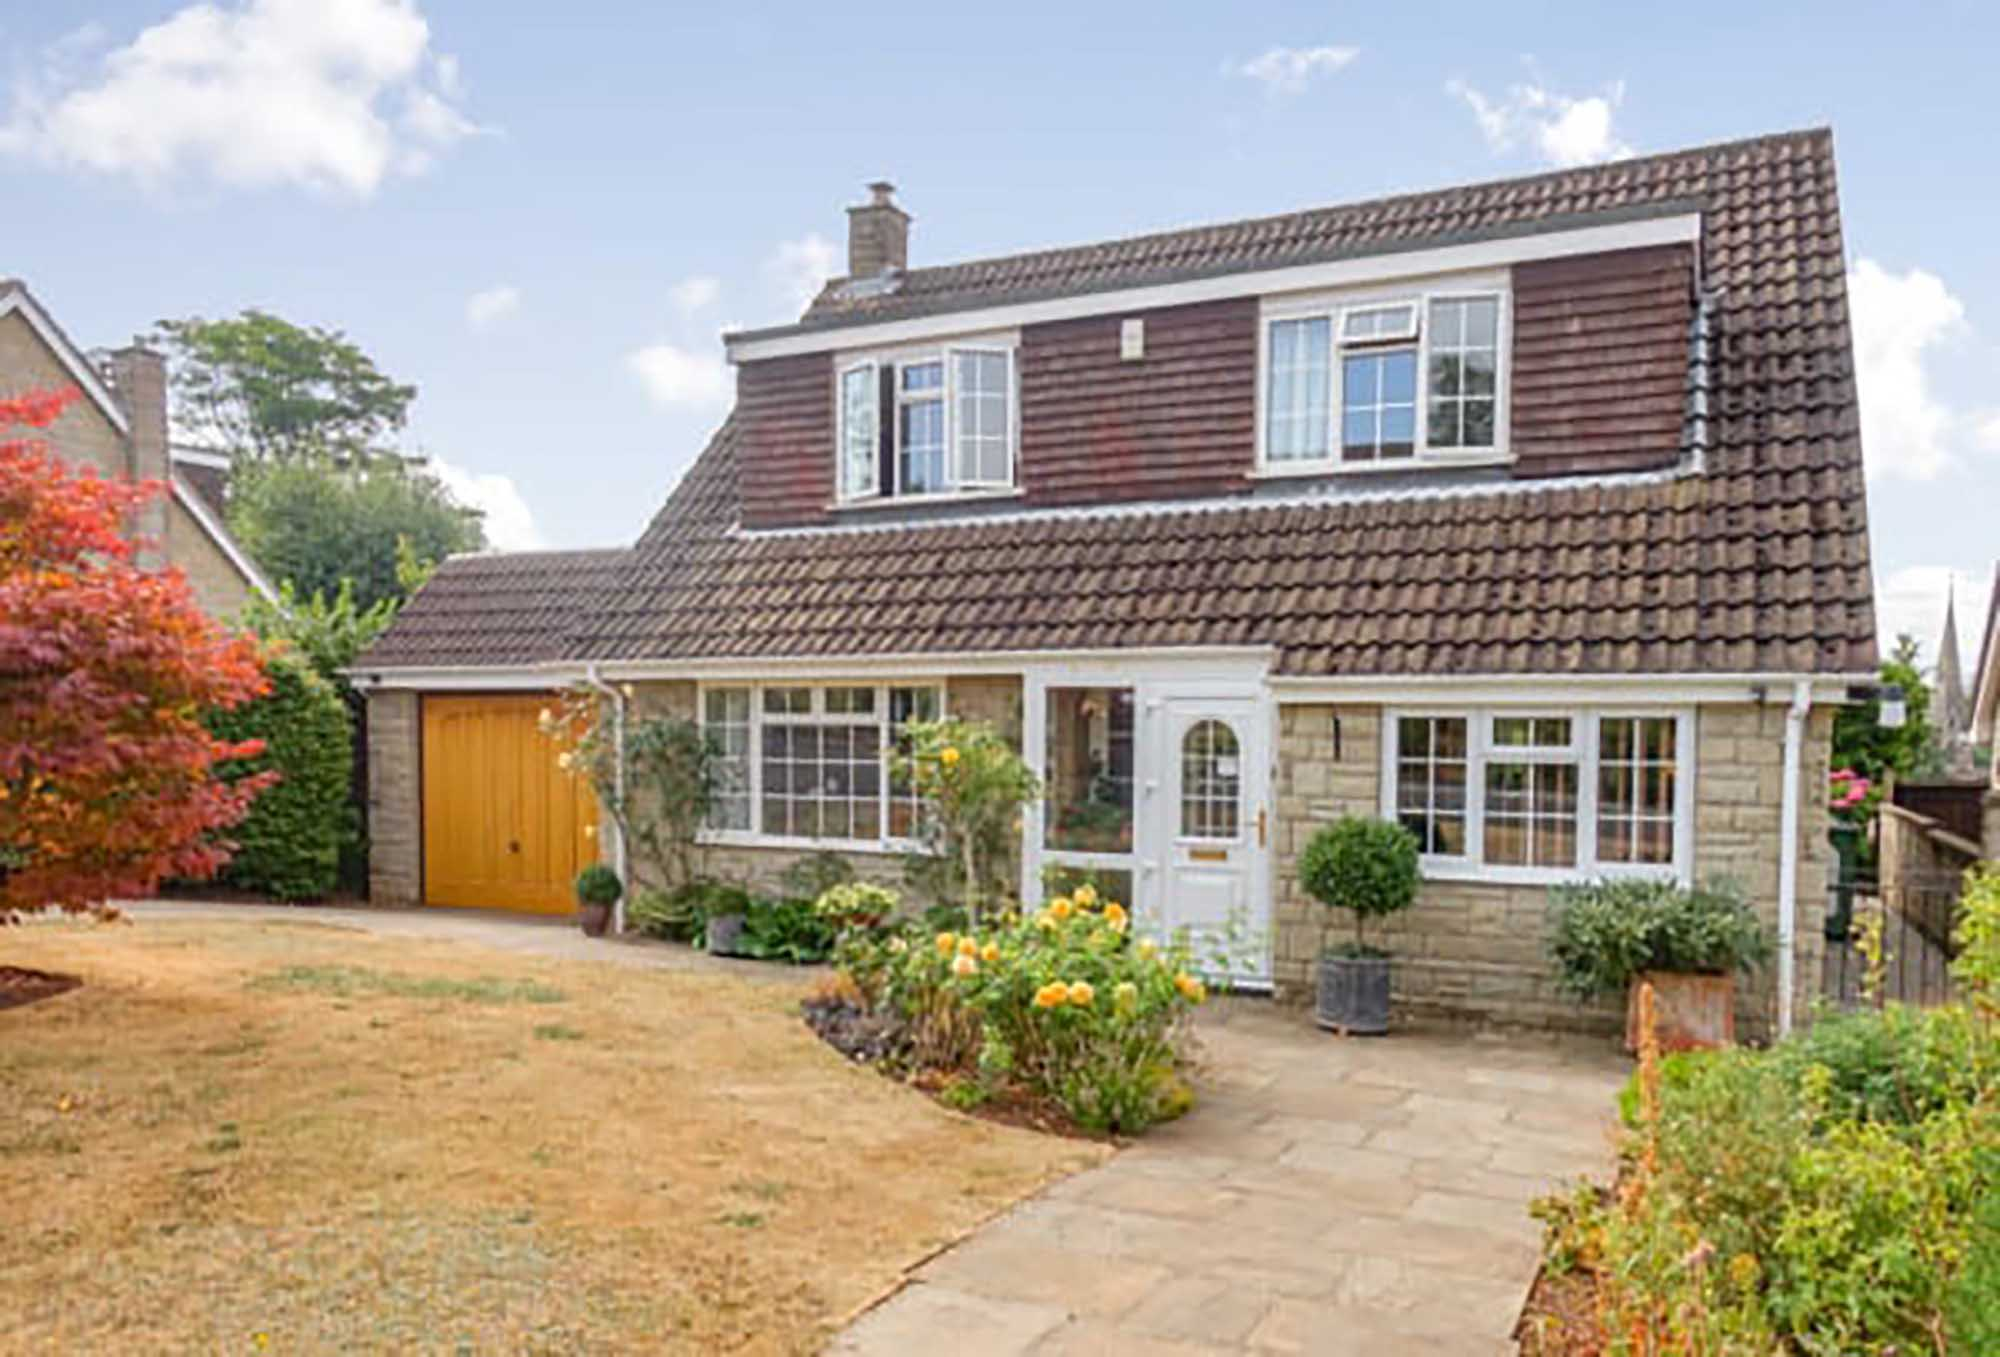 Wells, peaceful and very desirable location with fabulous views